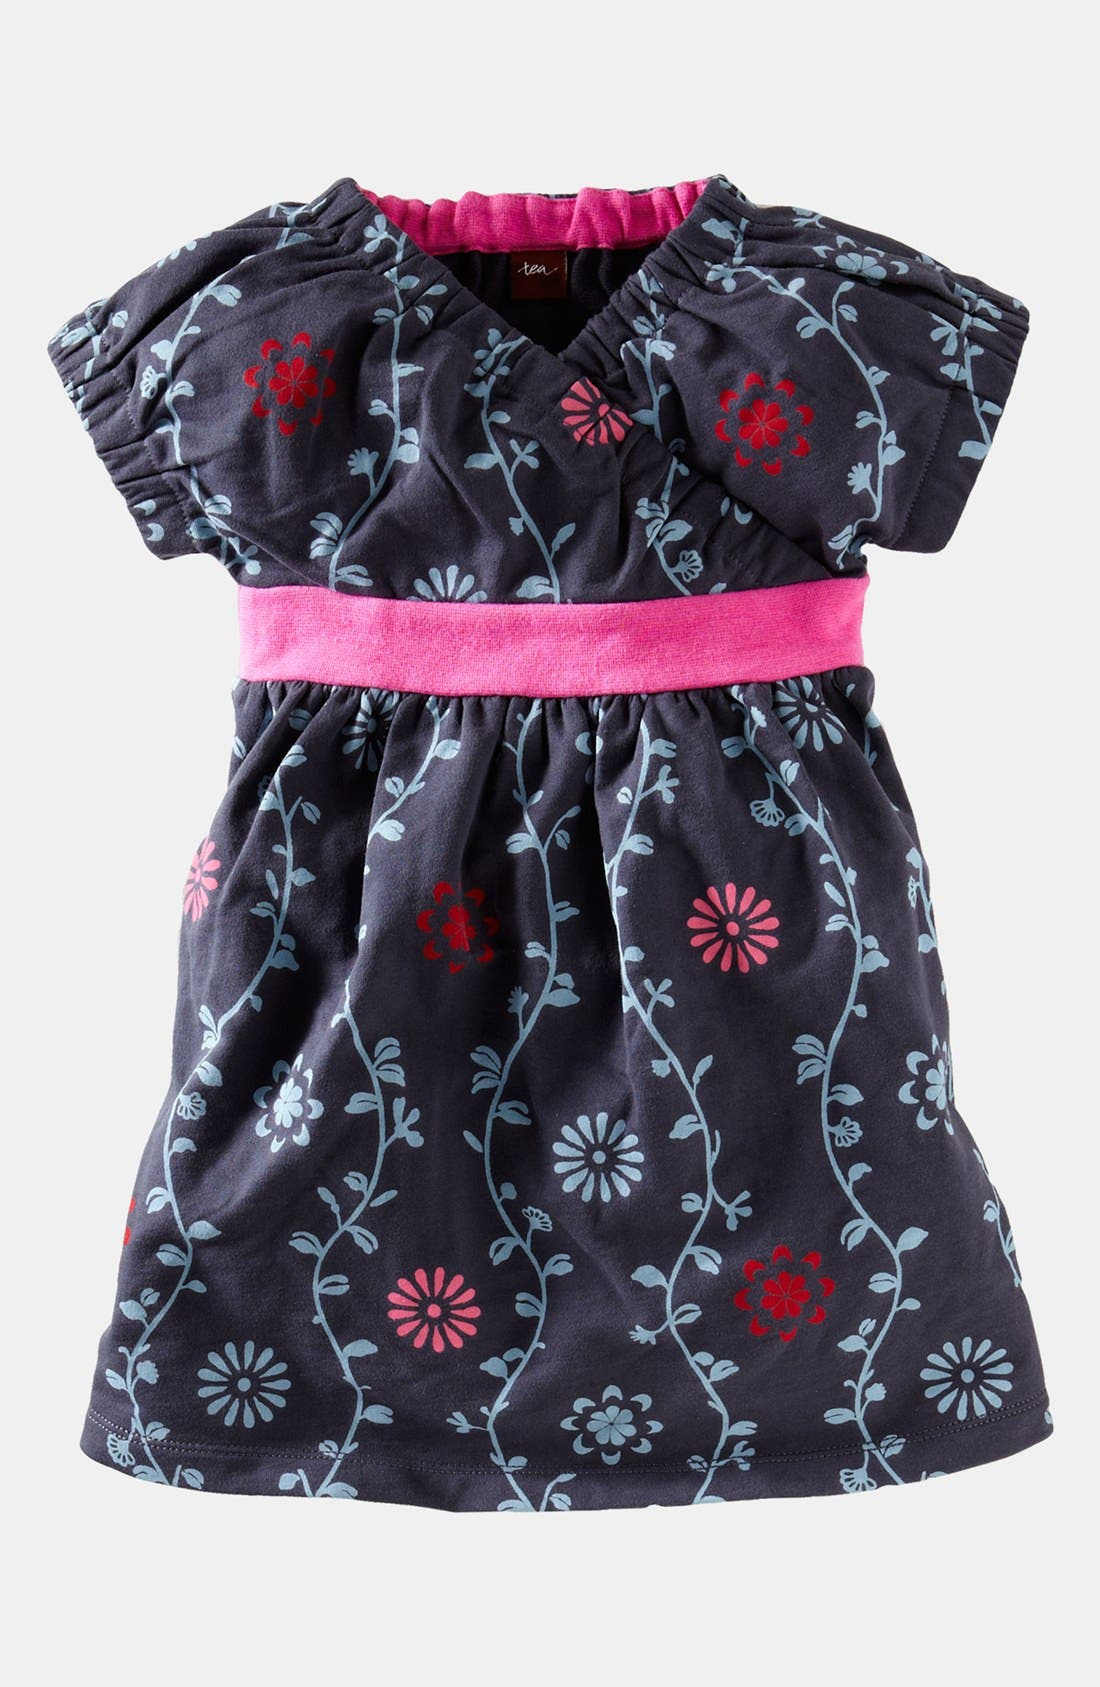 Alternate Image 1 Selected - Tea Collection 'Indigo Vines' Dress (Little Girls & Big Girls)